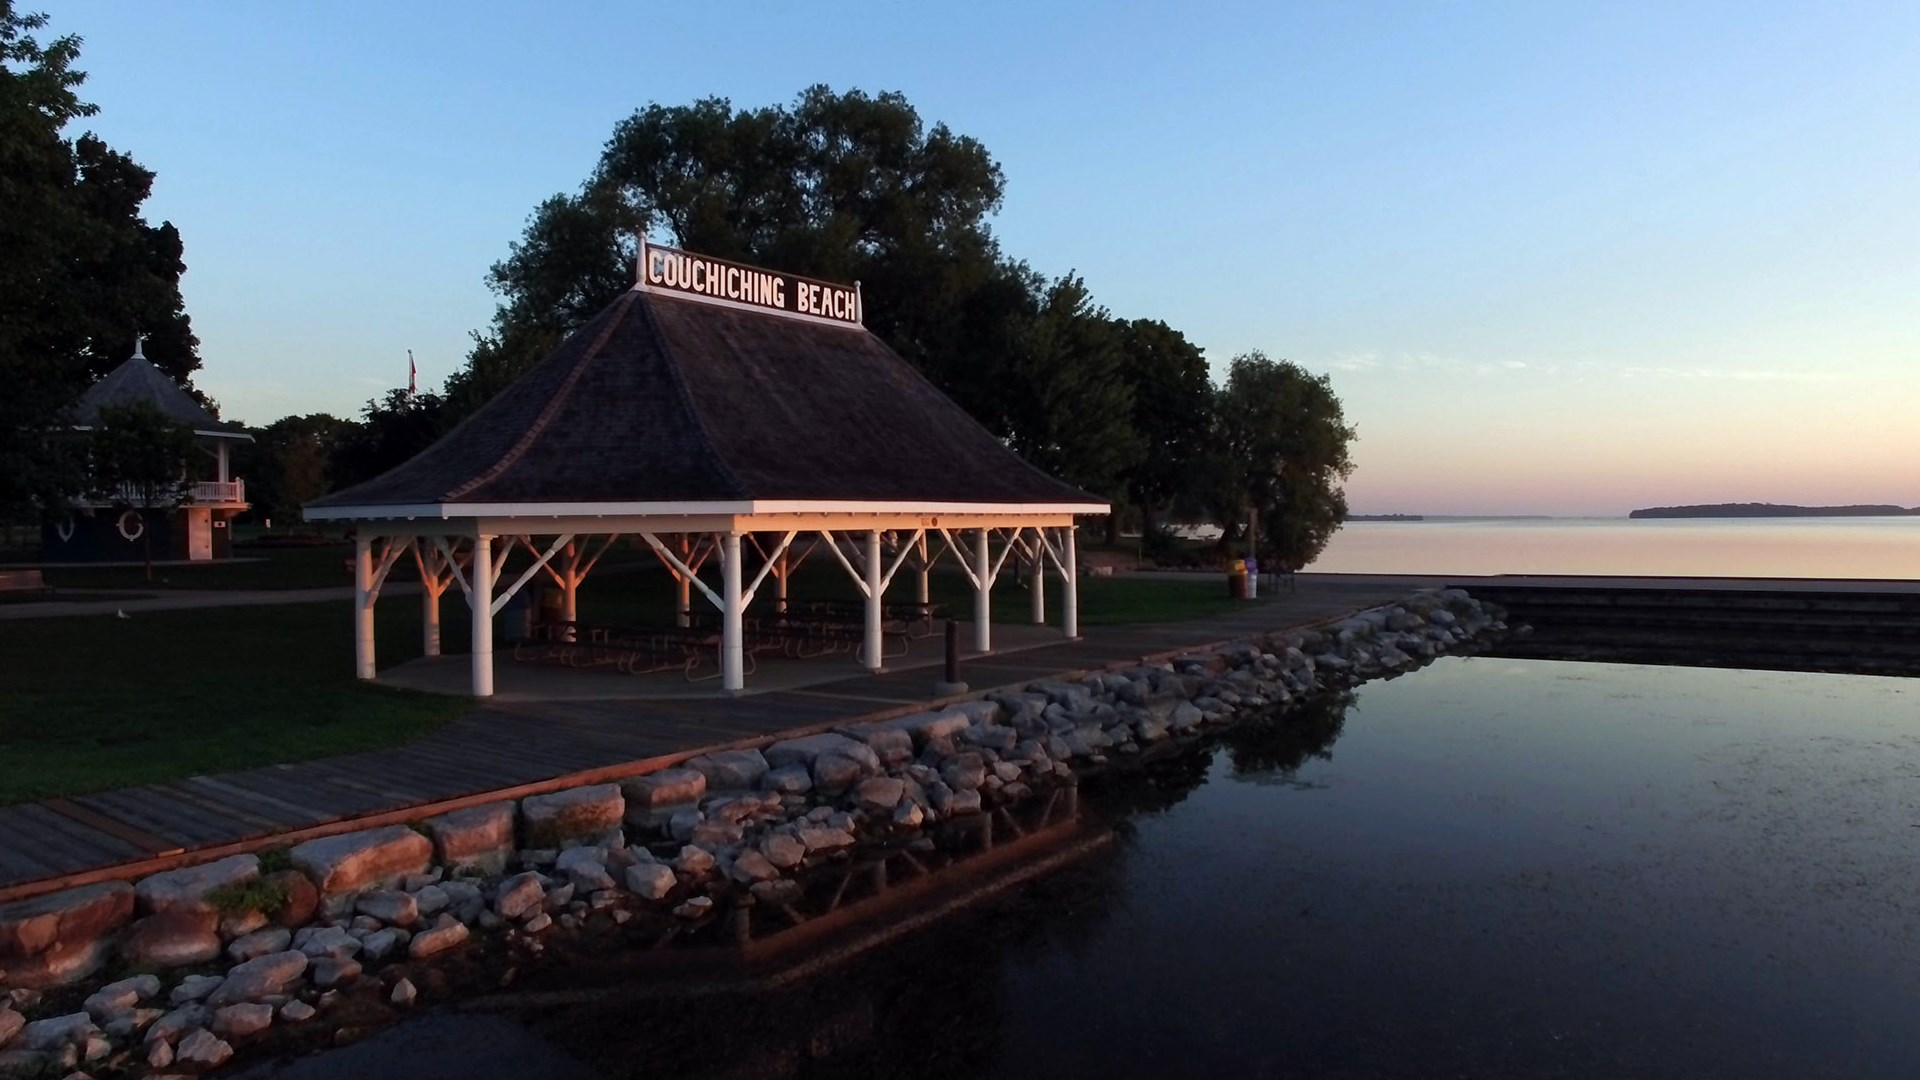 Summer by the water at the Pavilion at Couchiching Beach Park